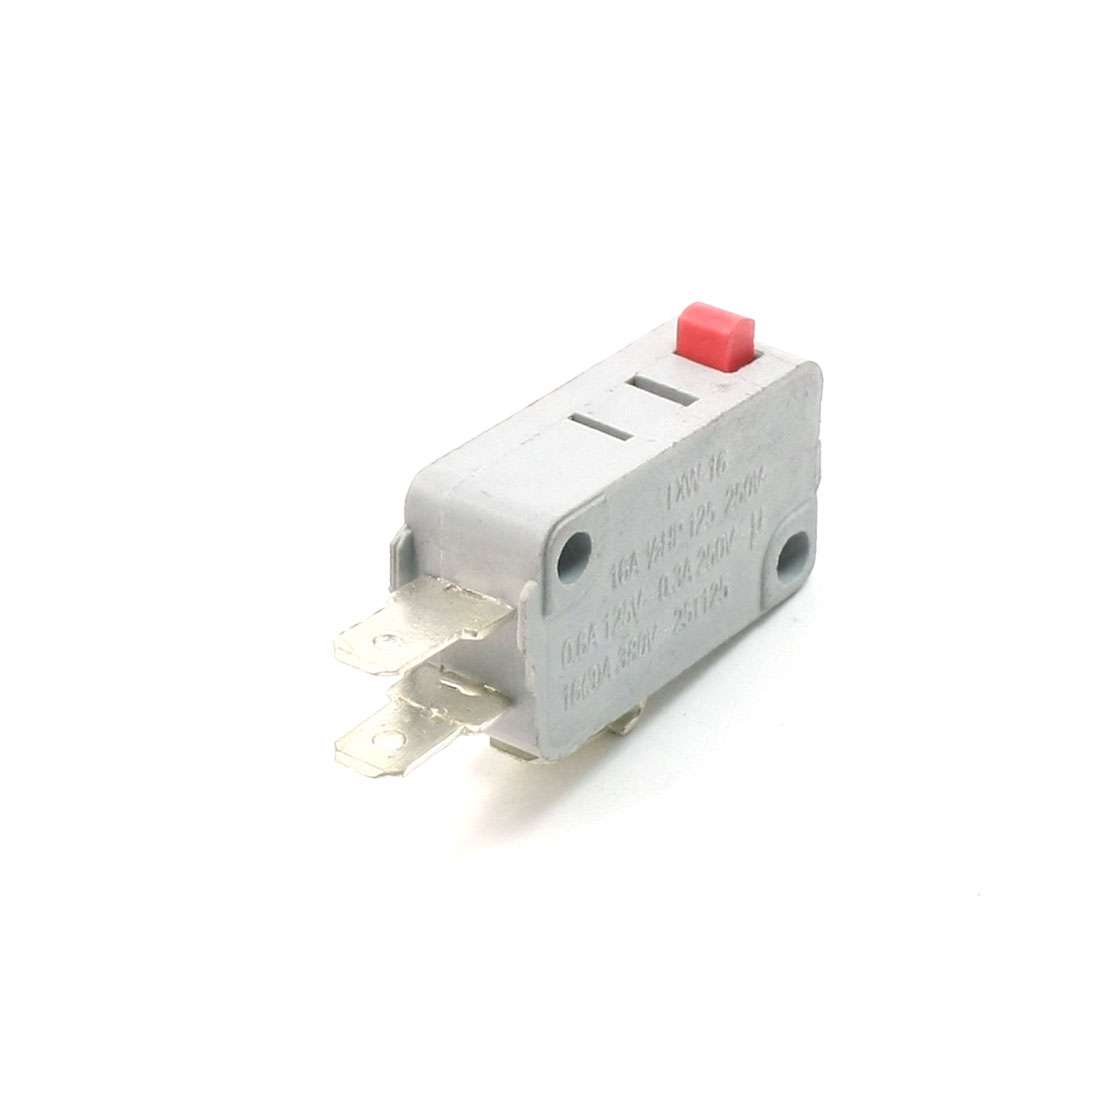 SPDT 3 Terminals Red Momentary Push Button Micro Limit Switch 125/250VAC 16A